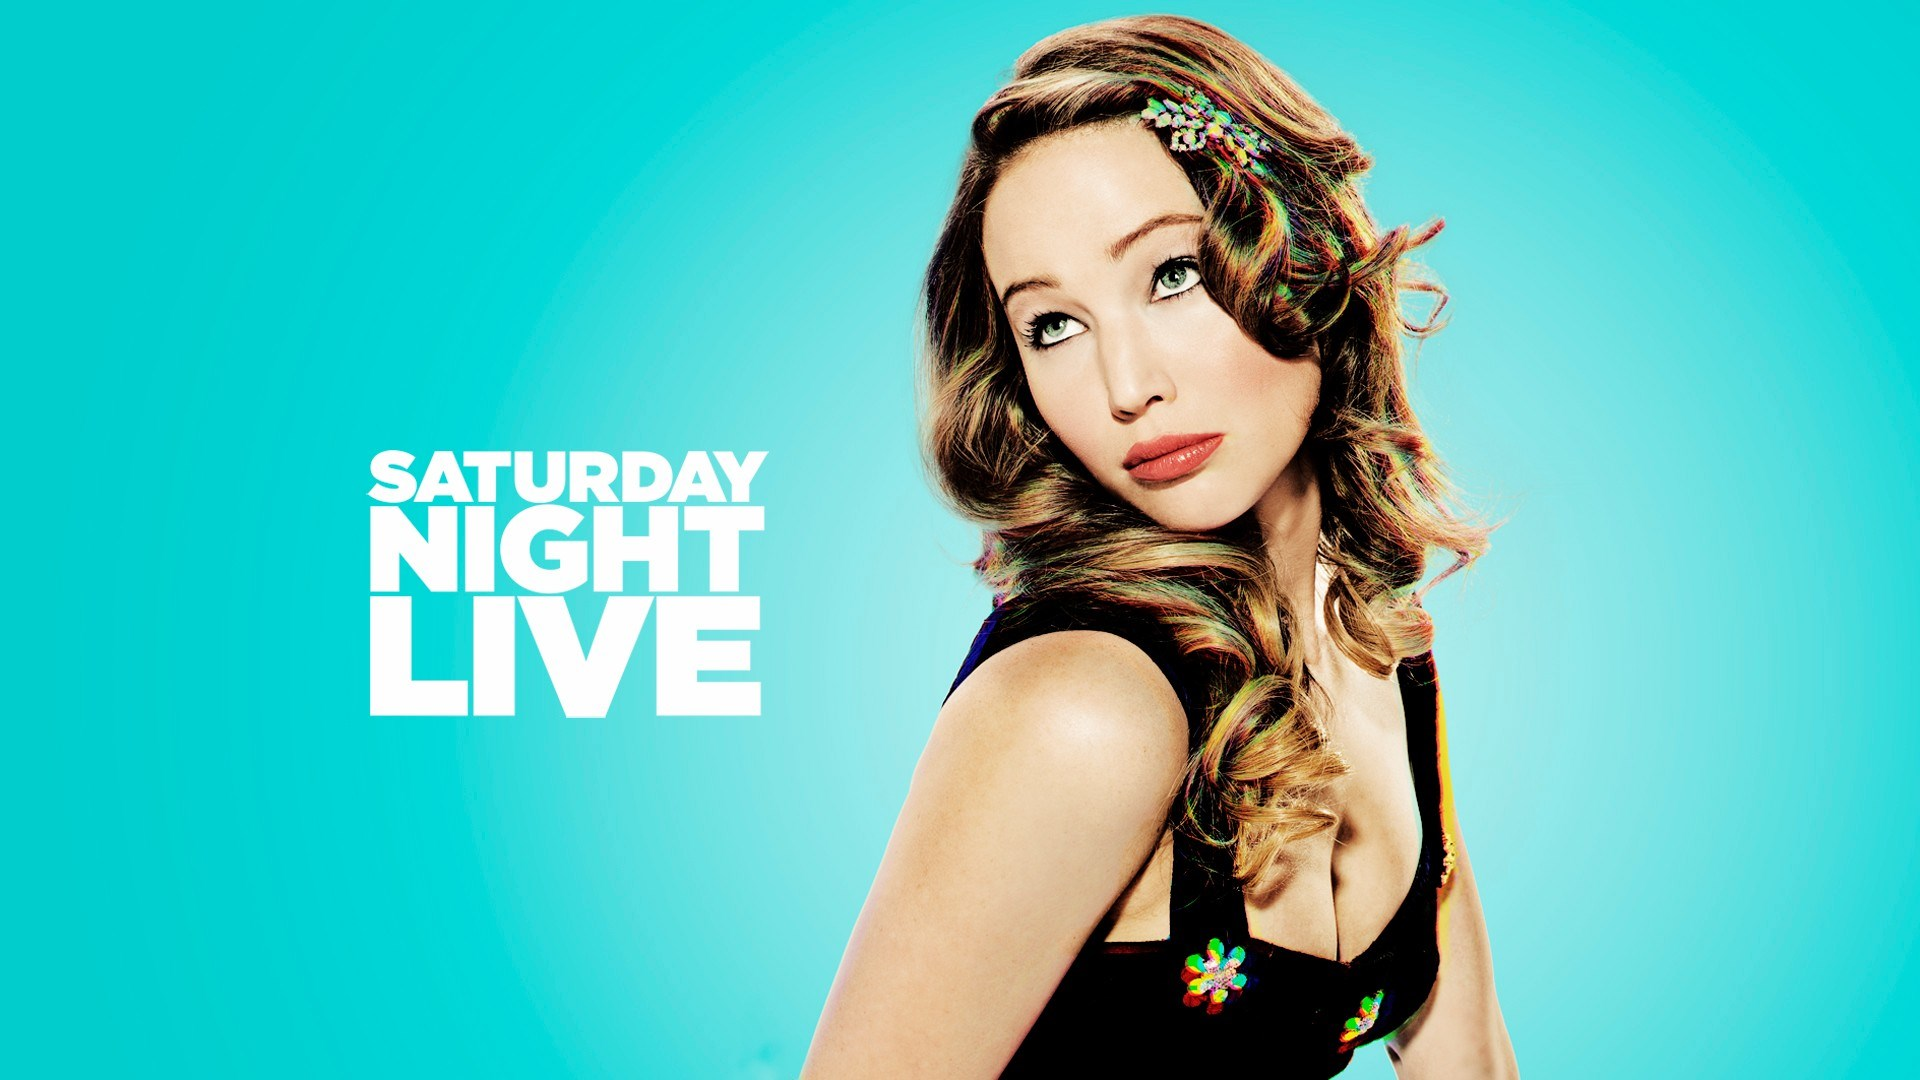 free-high-resolution-saturday-night-live-wallpaper-wp380211